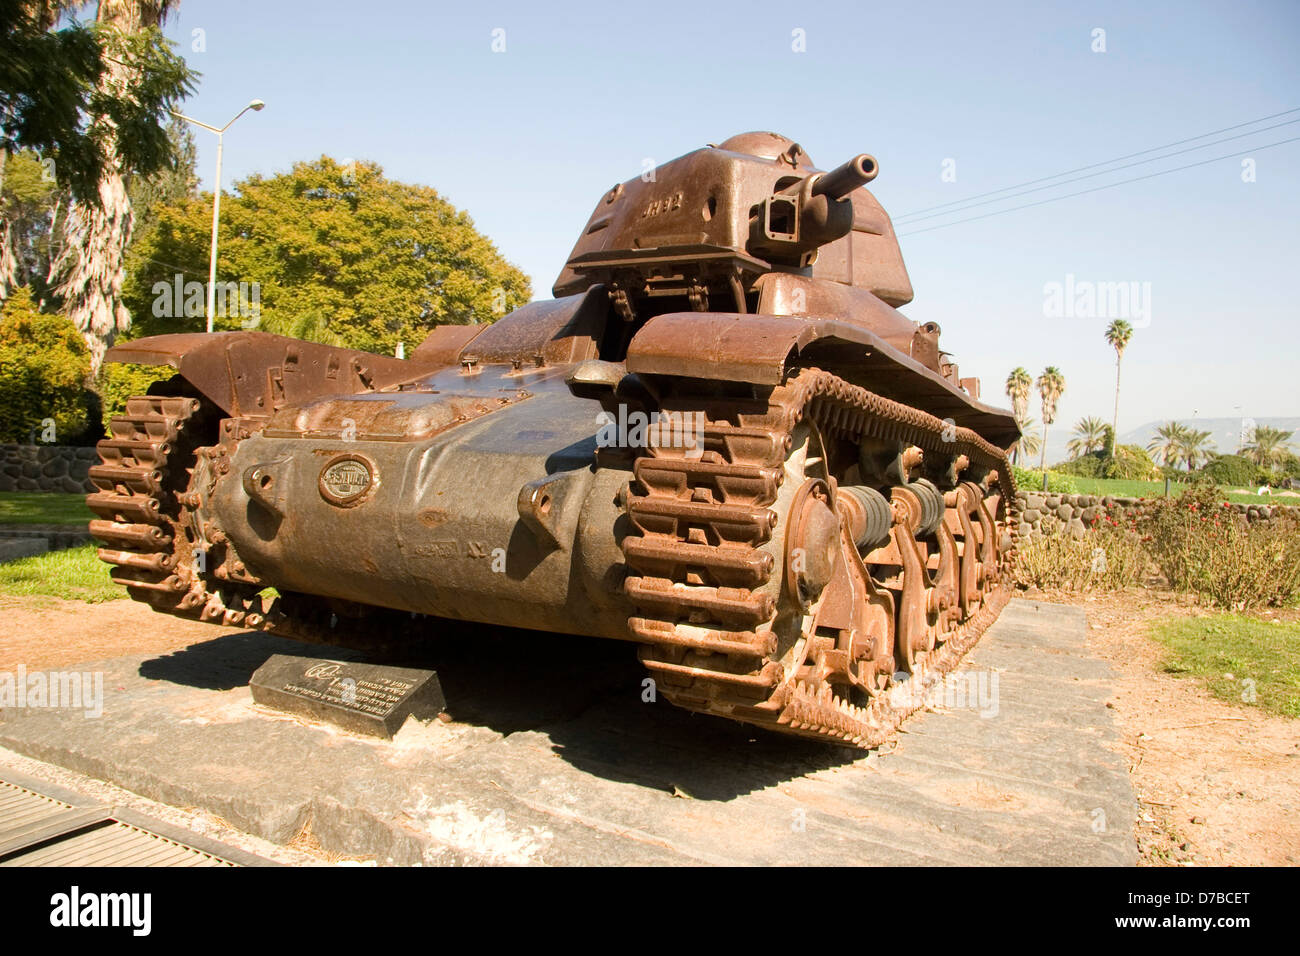 Renault 35 Syrian tank which attacked kibbutz Degania Alef during 1948 war - Stock Image